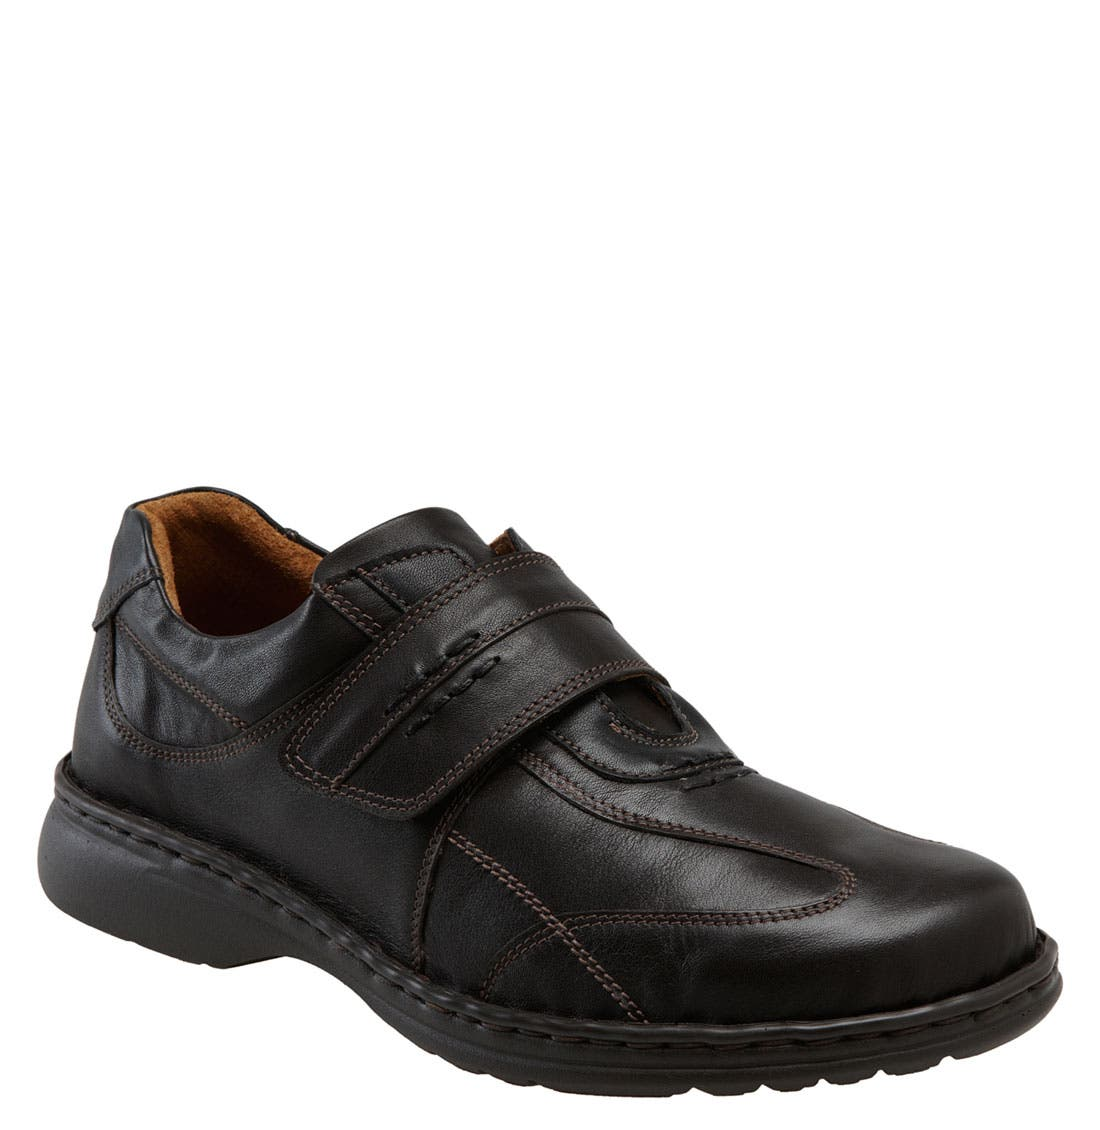 Main Image - Josef Seibel 'Curtis' Oxford